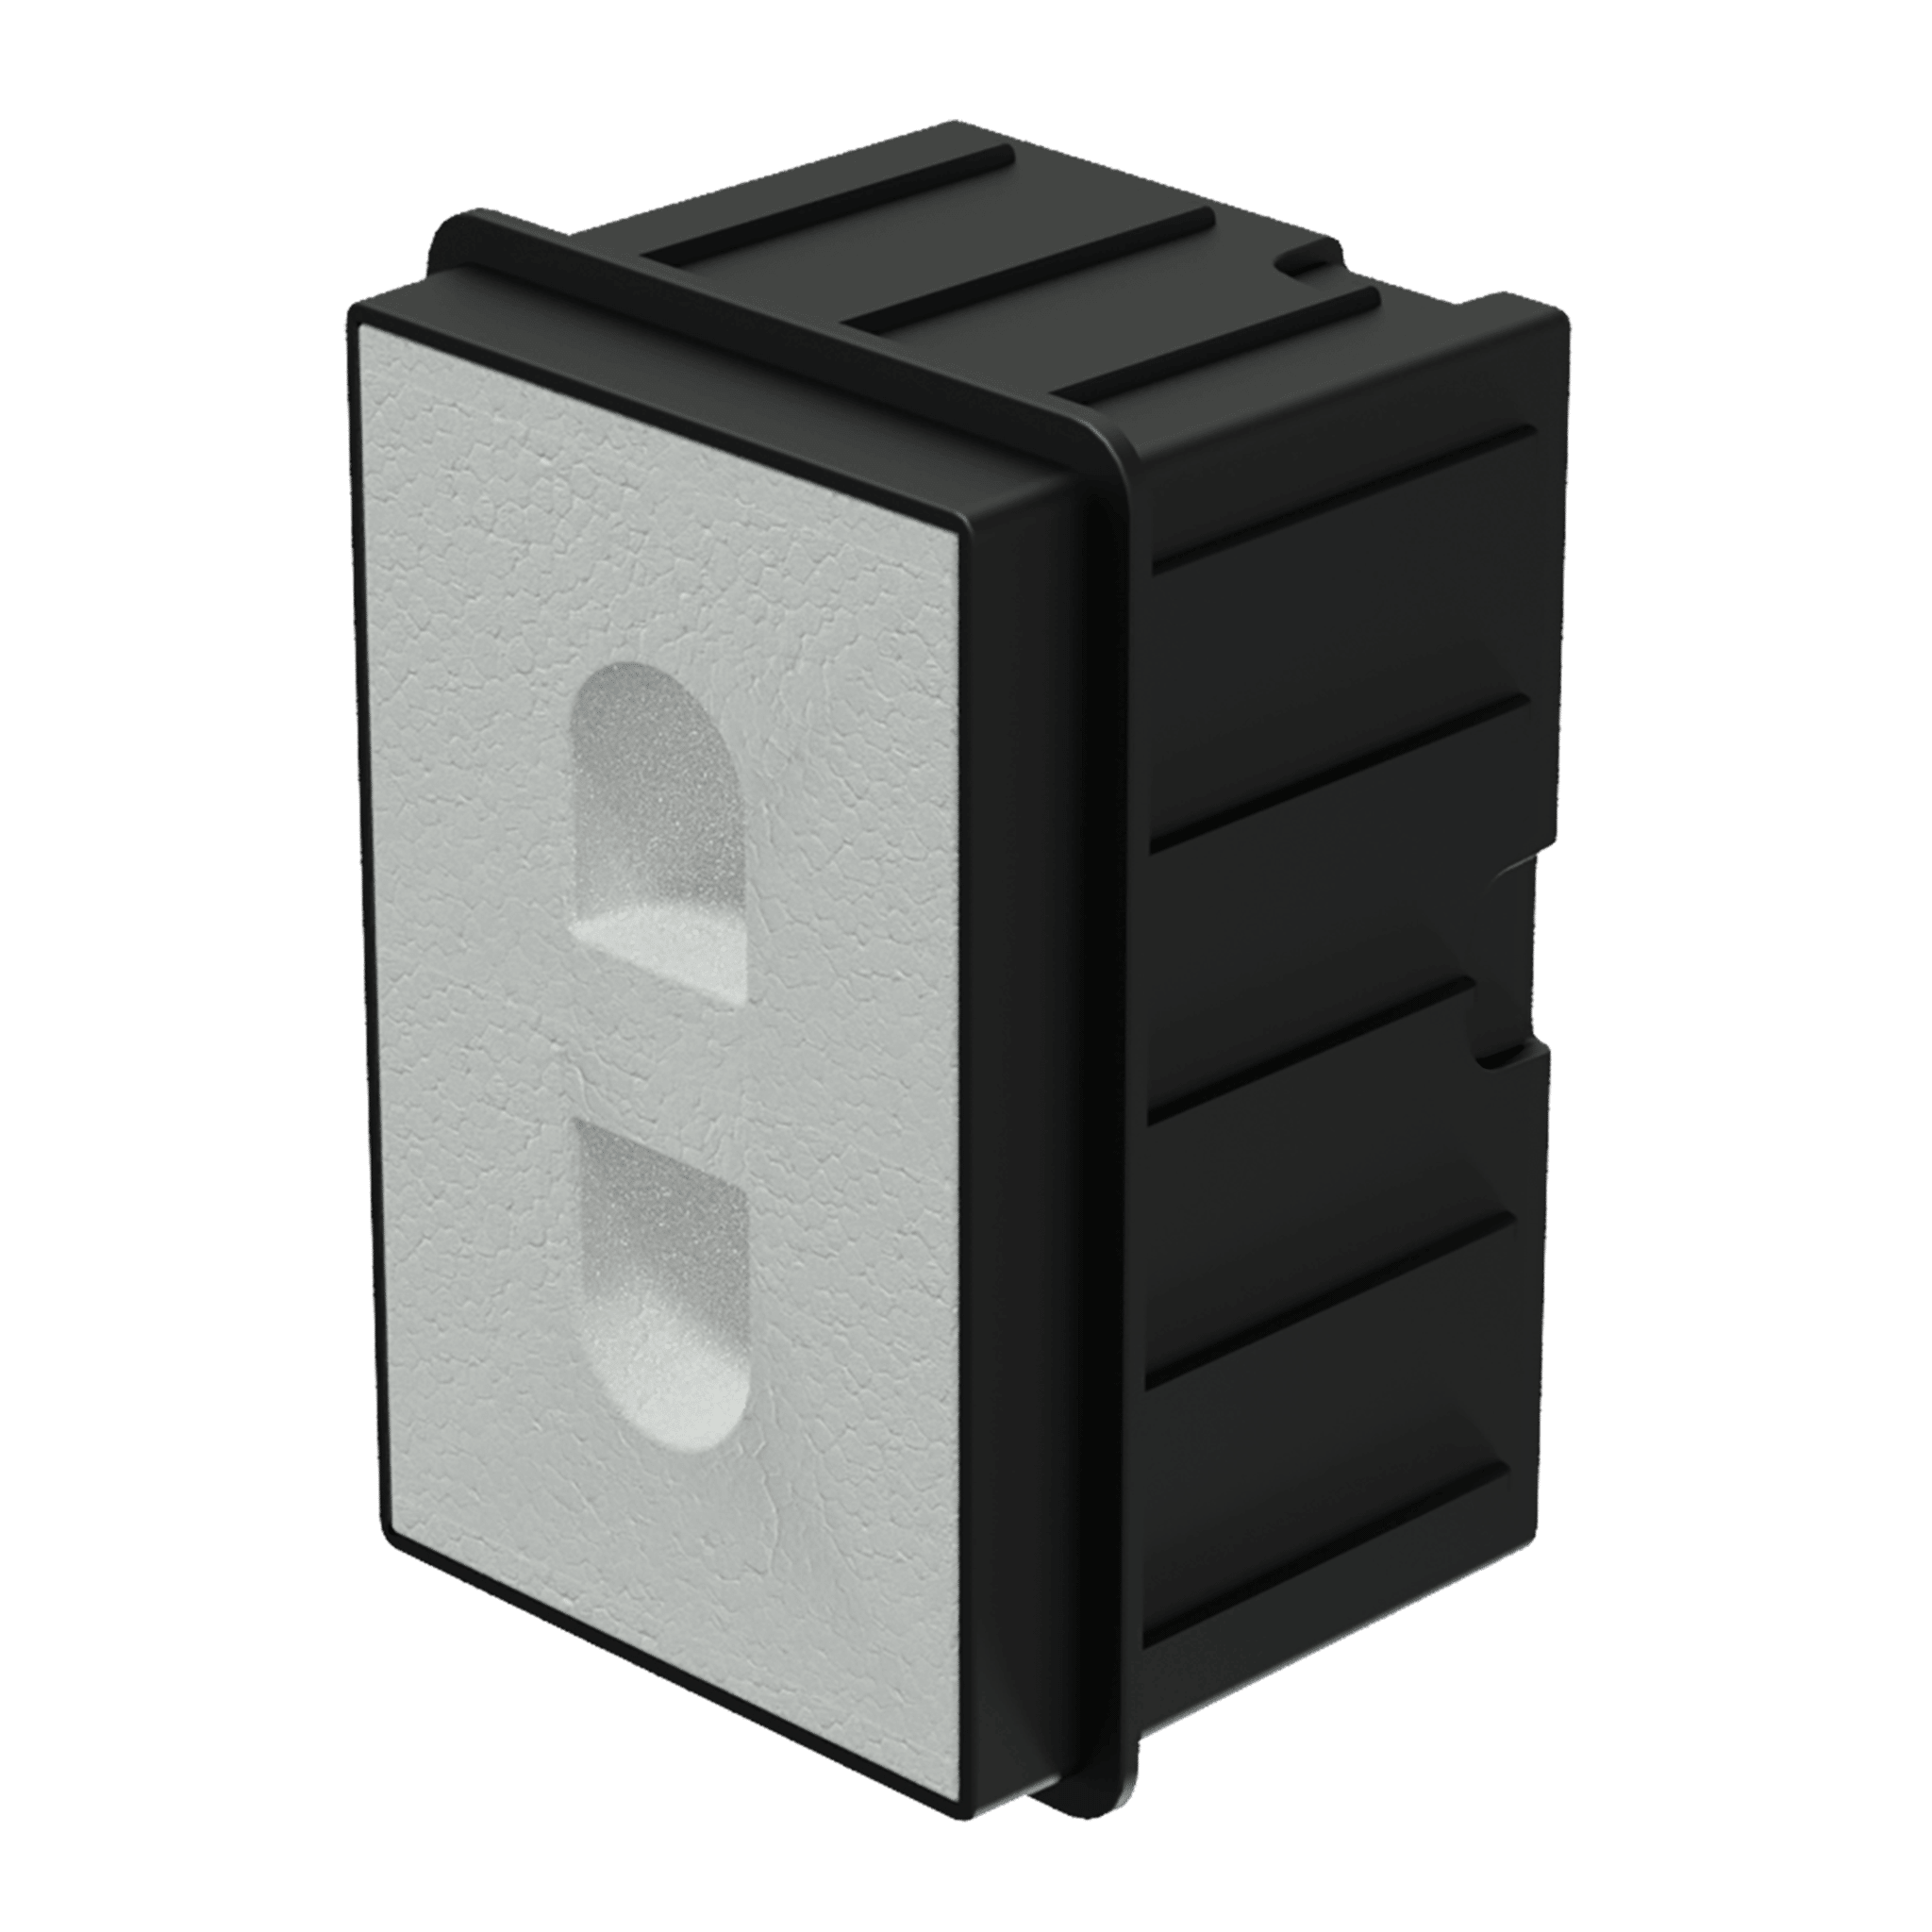 WMM20 - In-wall box for MERO2 for concrete/brick wall